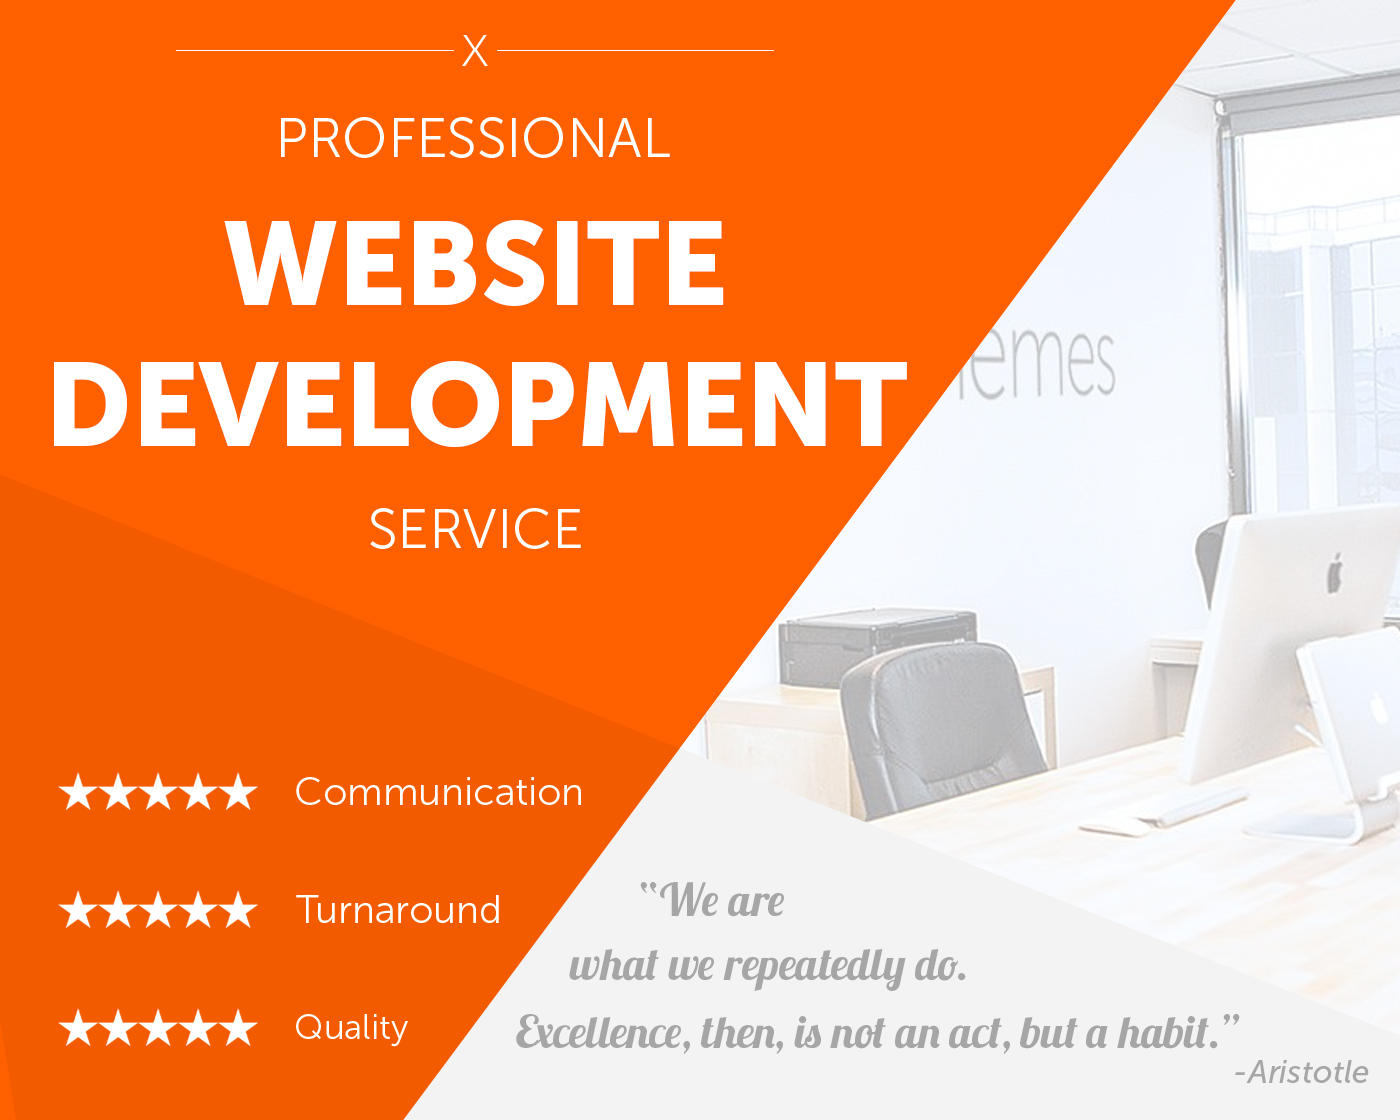 Professional Website Development by xstreamthemes - 68901